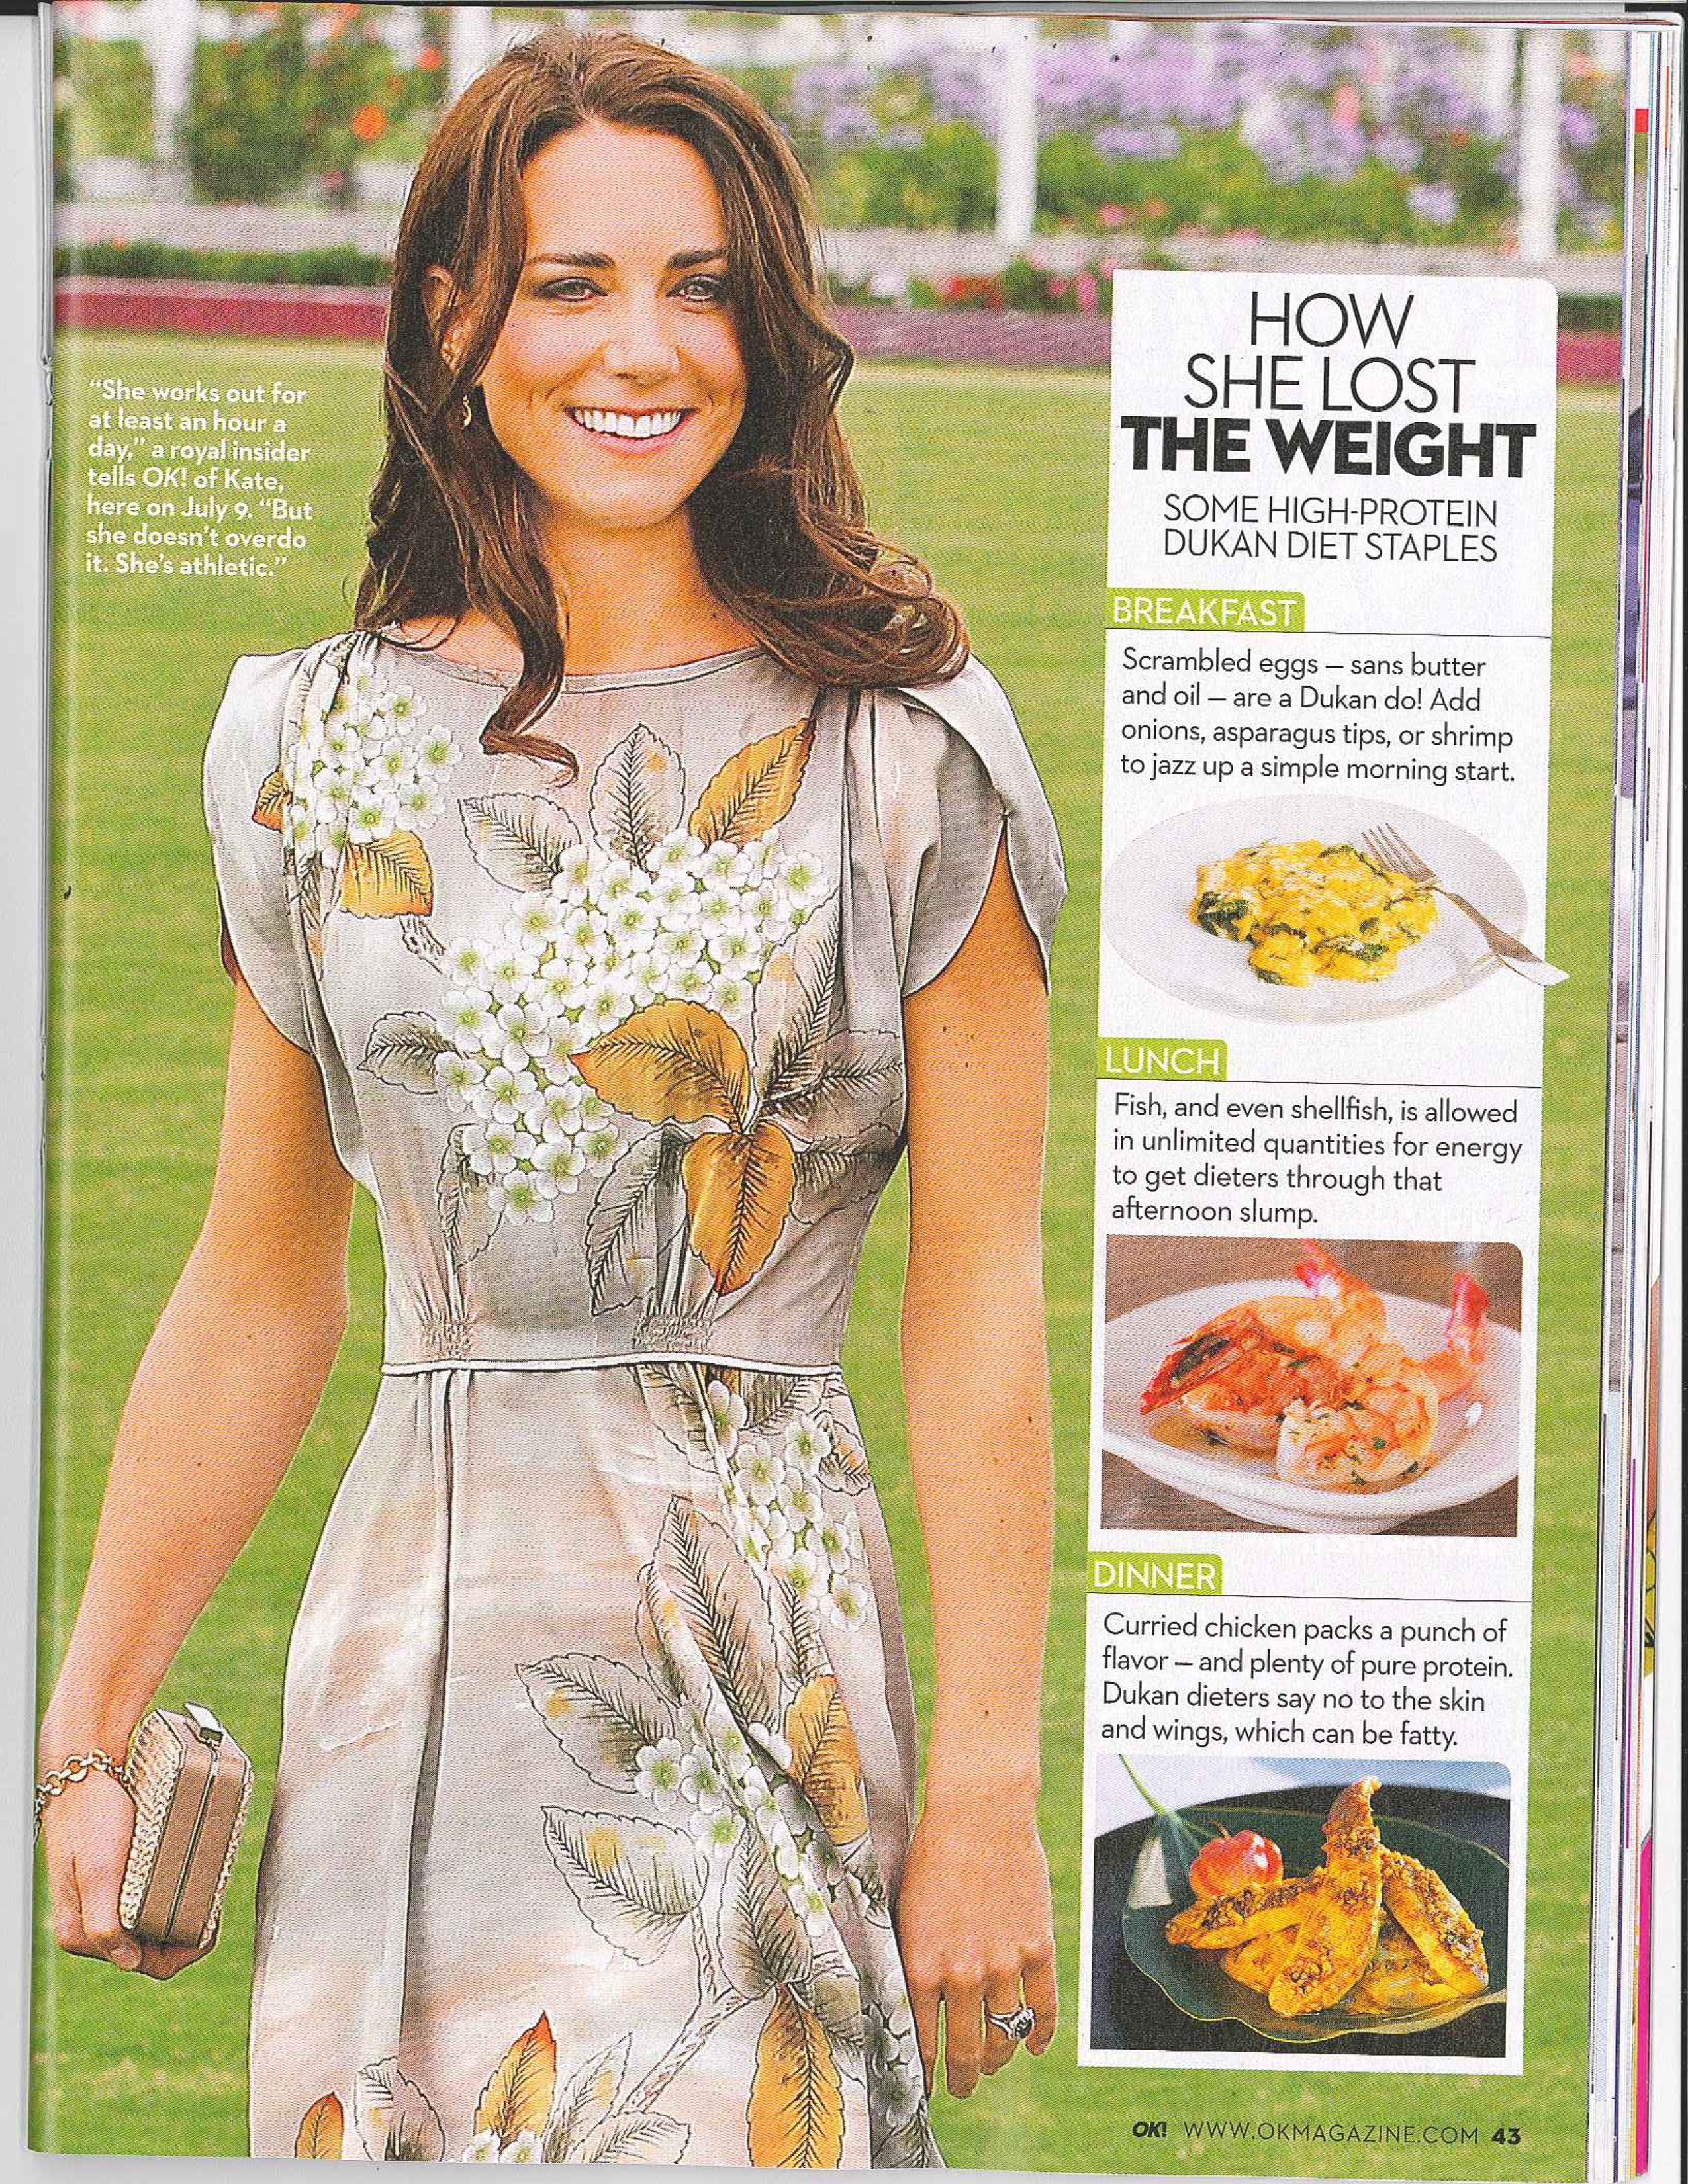 It Was Reported That Kate Middleton Used The Dukan Diet To Slim